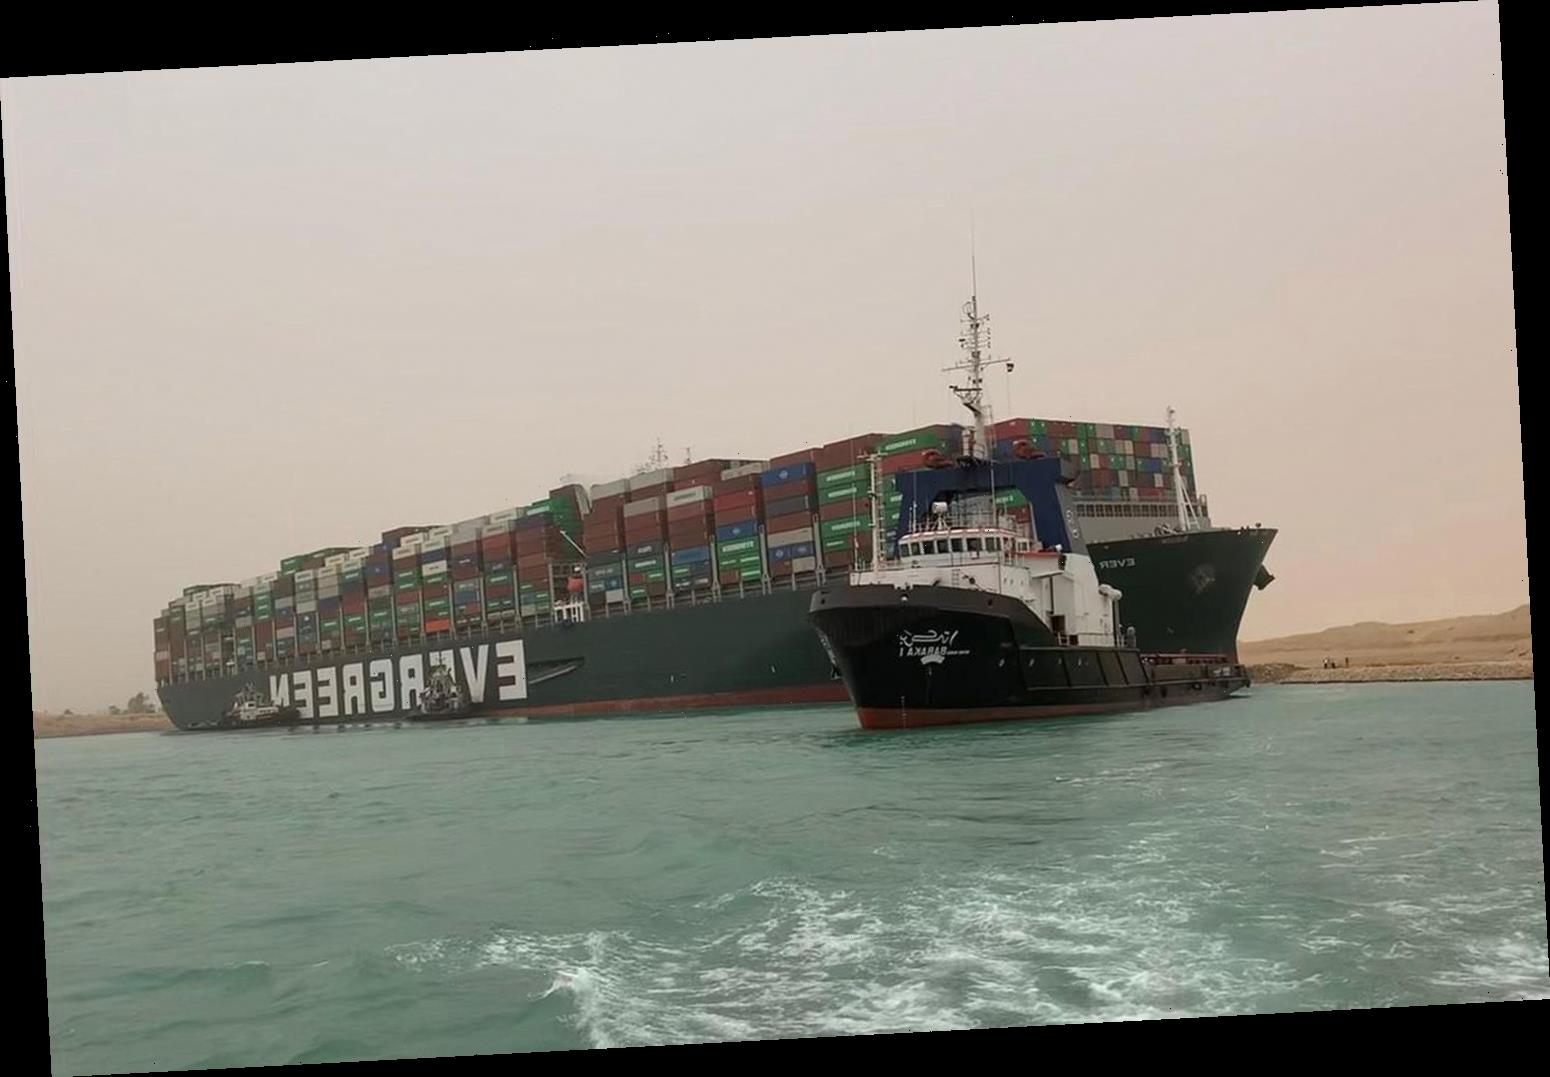 1,300-Foot Container Ship Accidentally Blocks Suez Canal for a Day